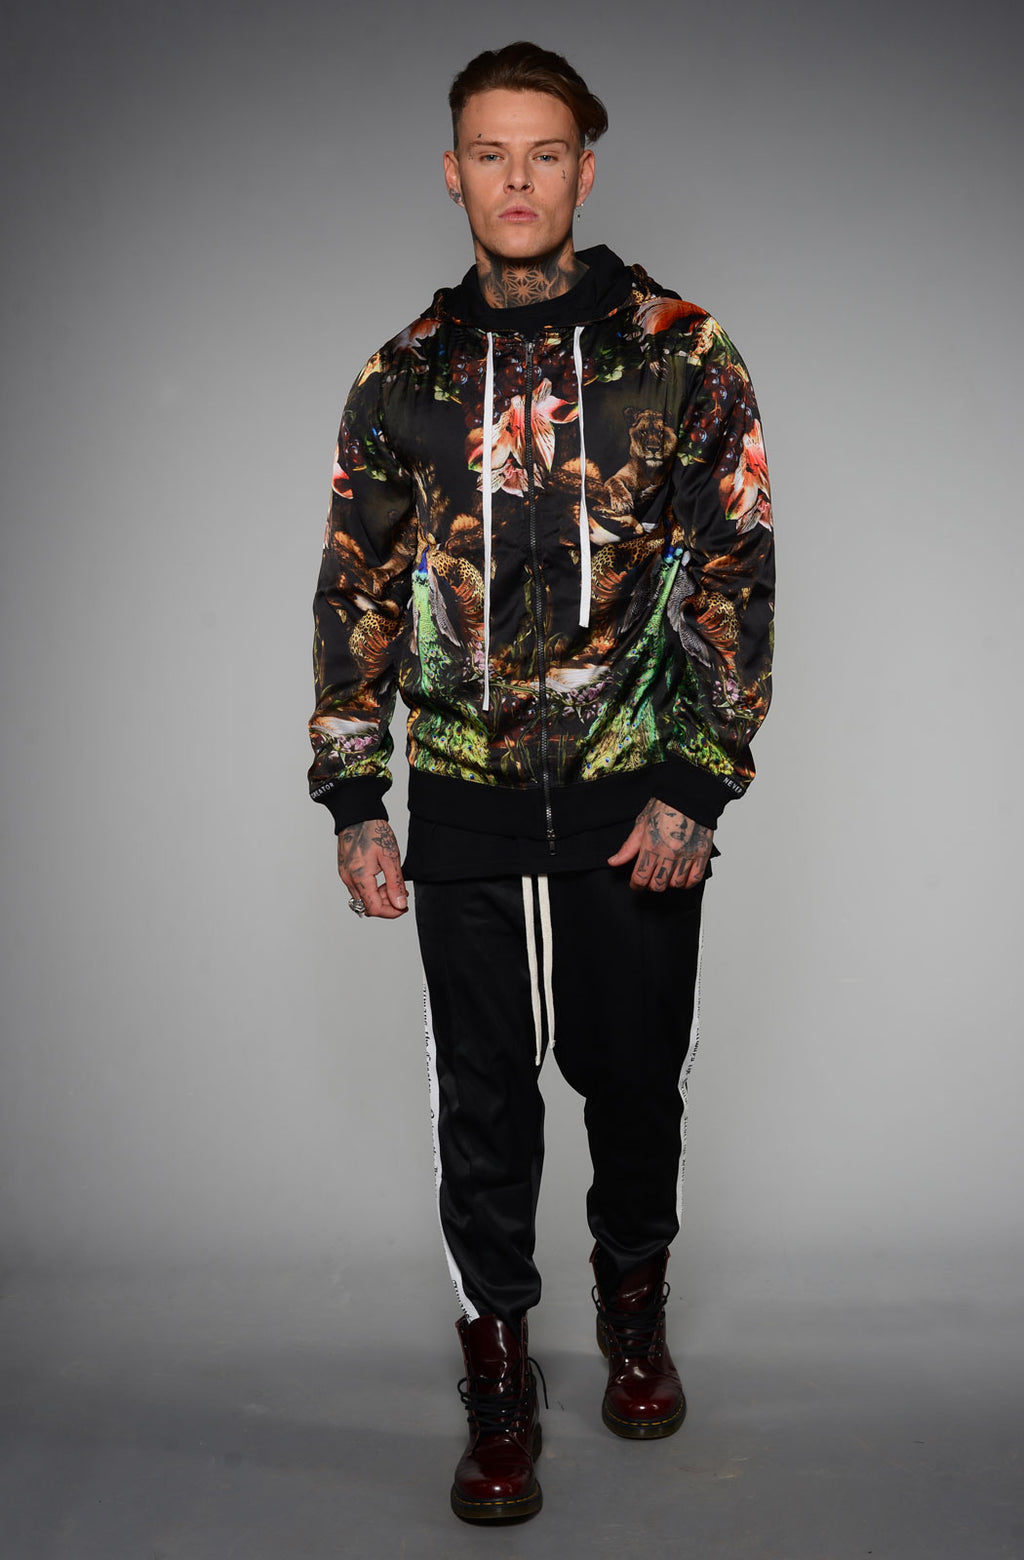 PARADISE BLACK LOST SILK HOODIE BY SONS OF HEROES